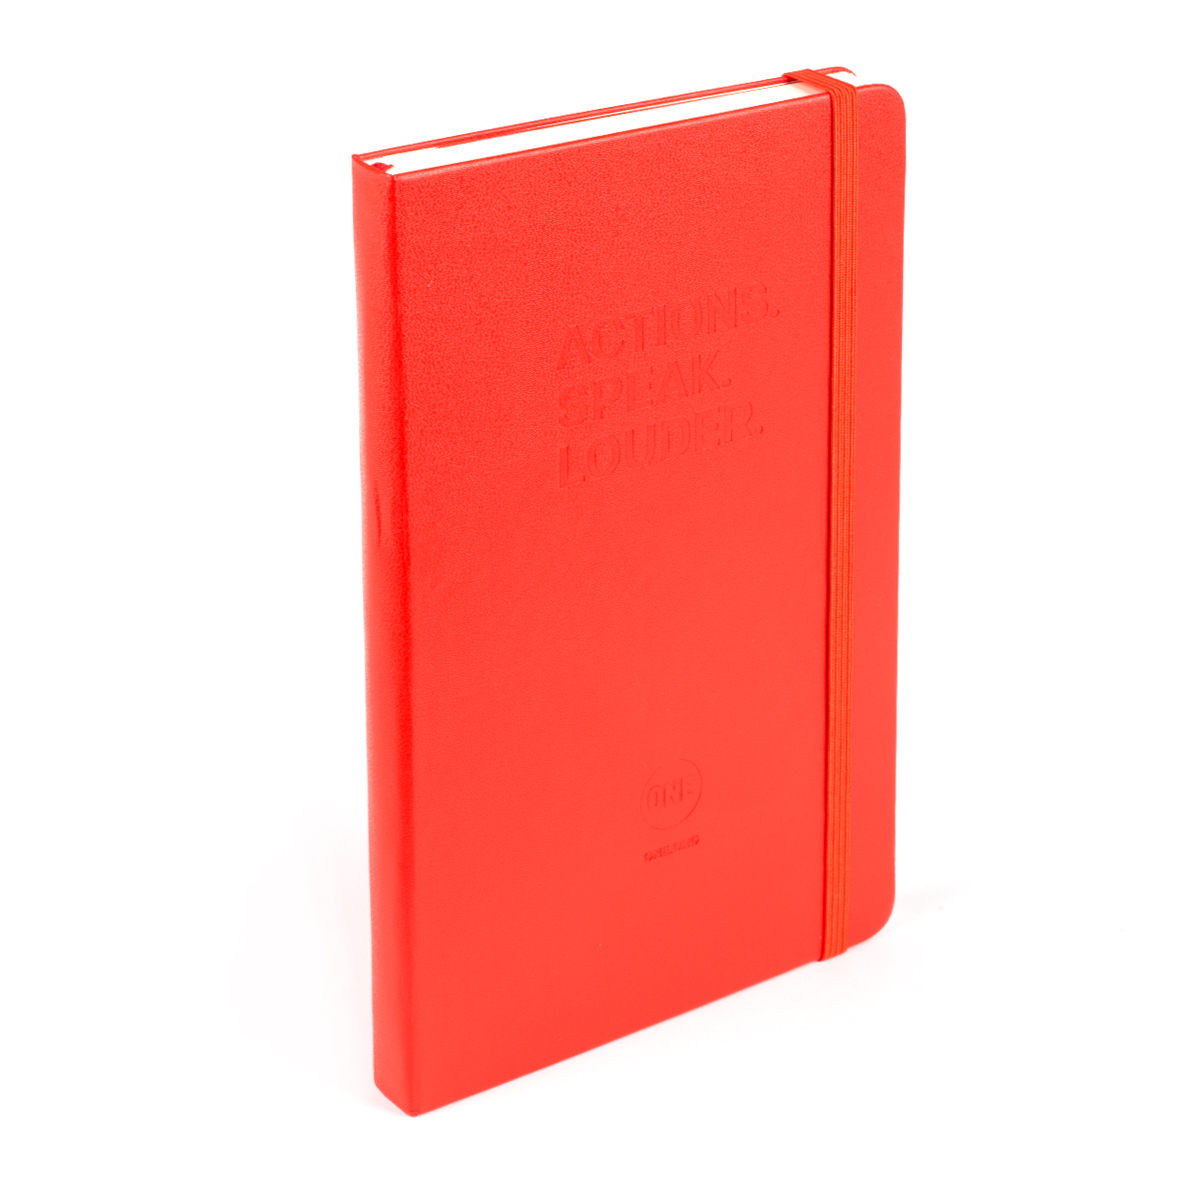 Special Edition ONE Moleskine Notebook